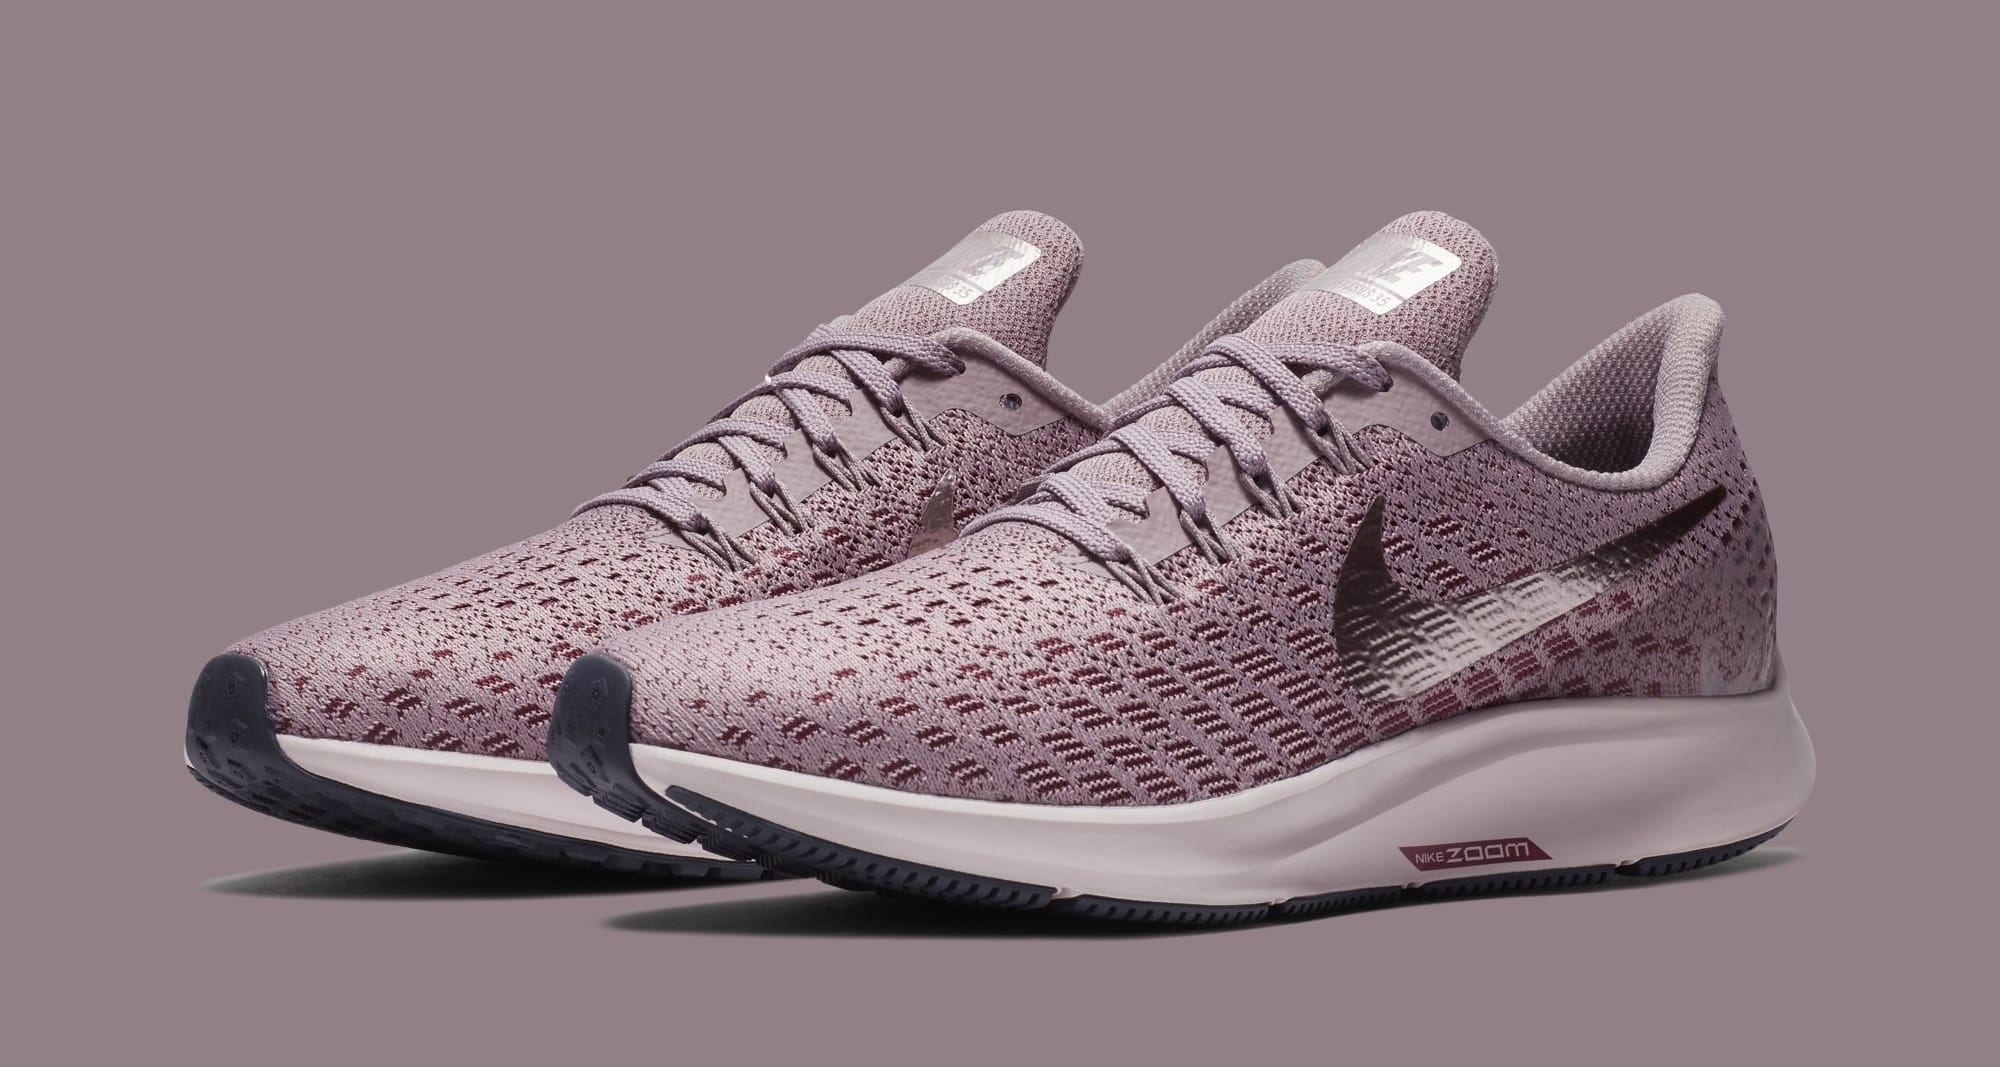 Nike Air Zoom Pegasus 35 - Women's free shipping footlocker finishline outlet 2014 free shipping with credit card QycKU